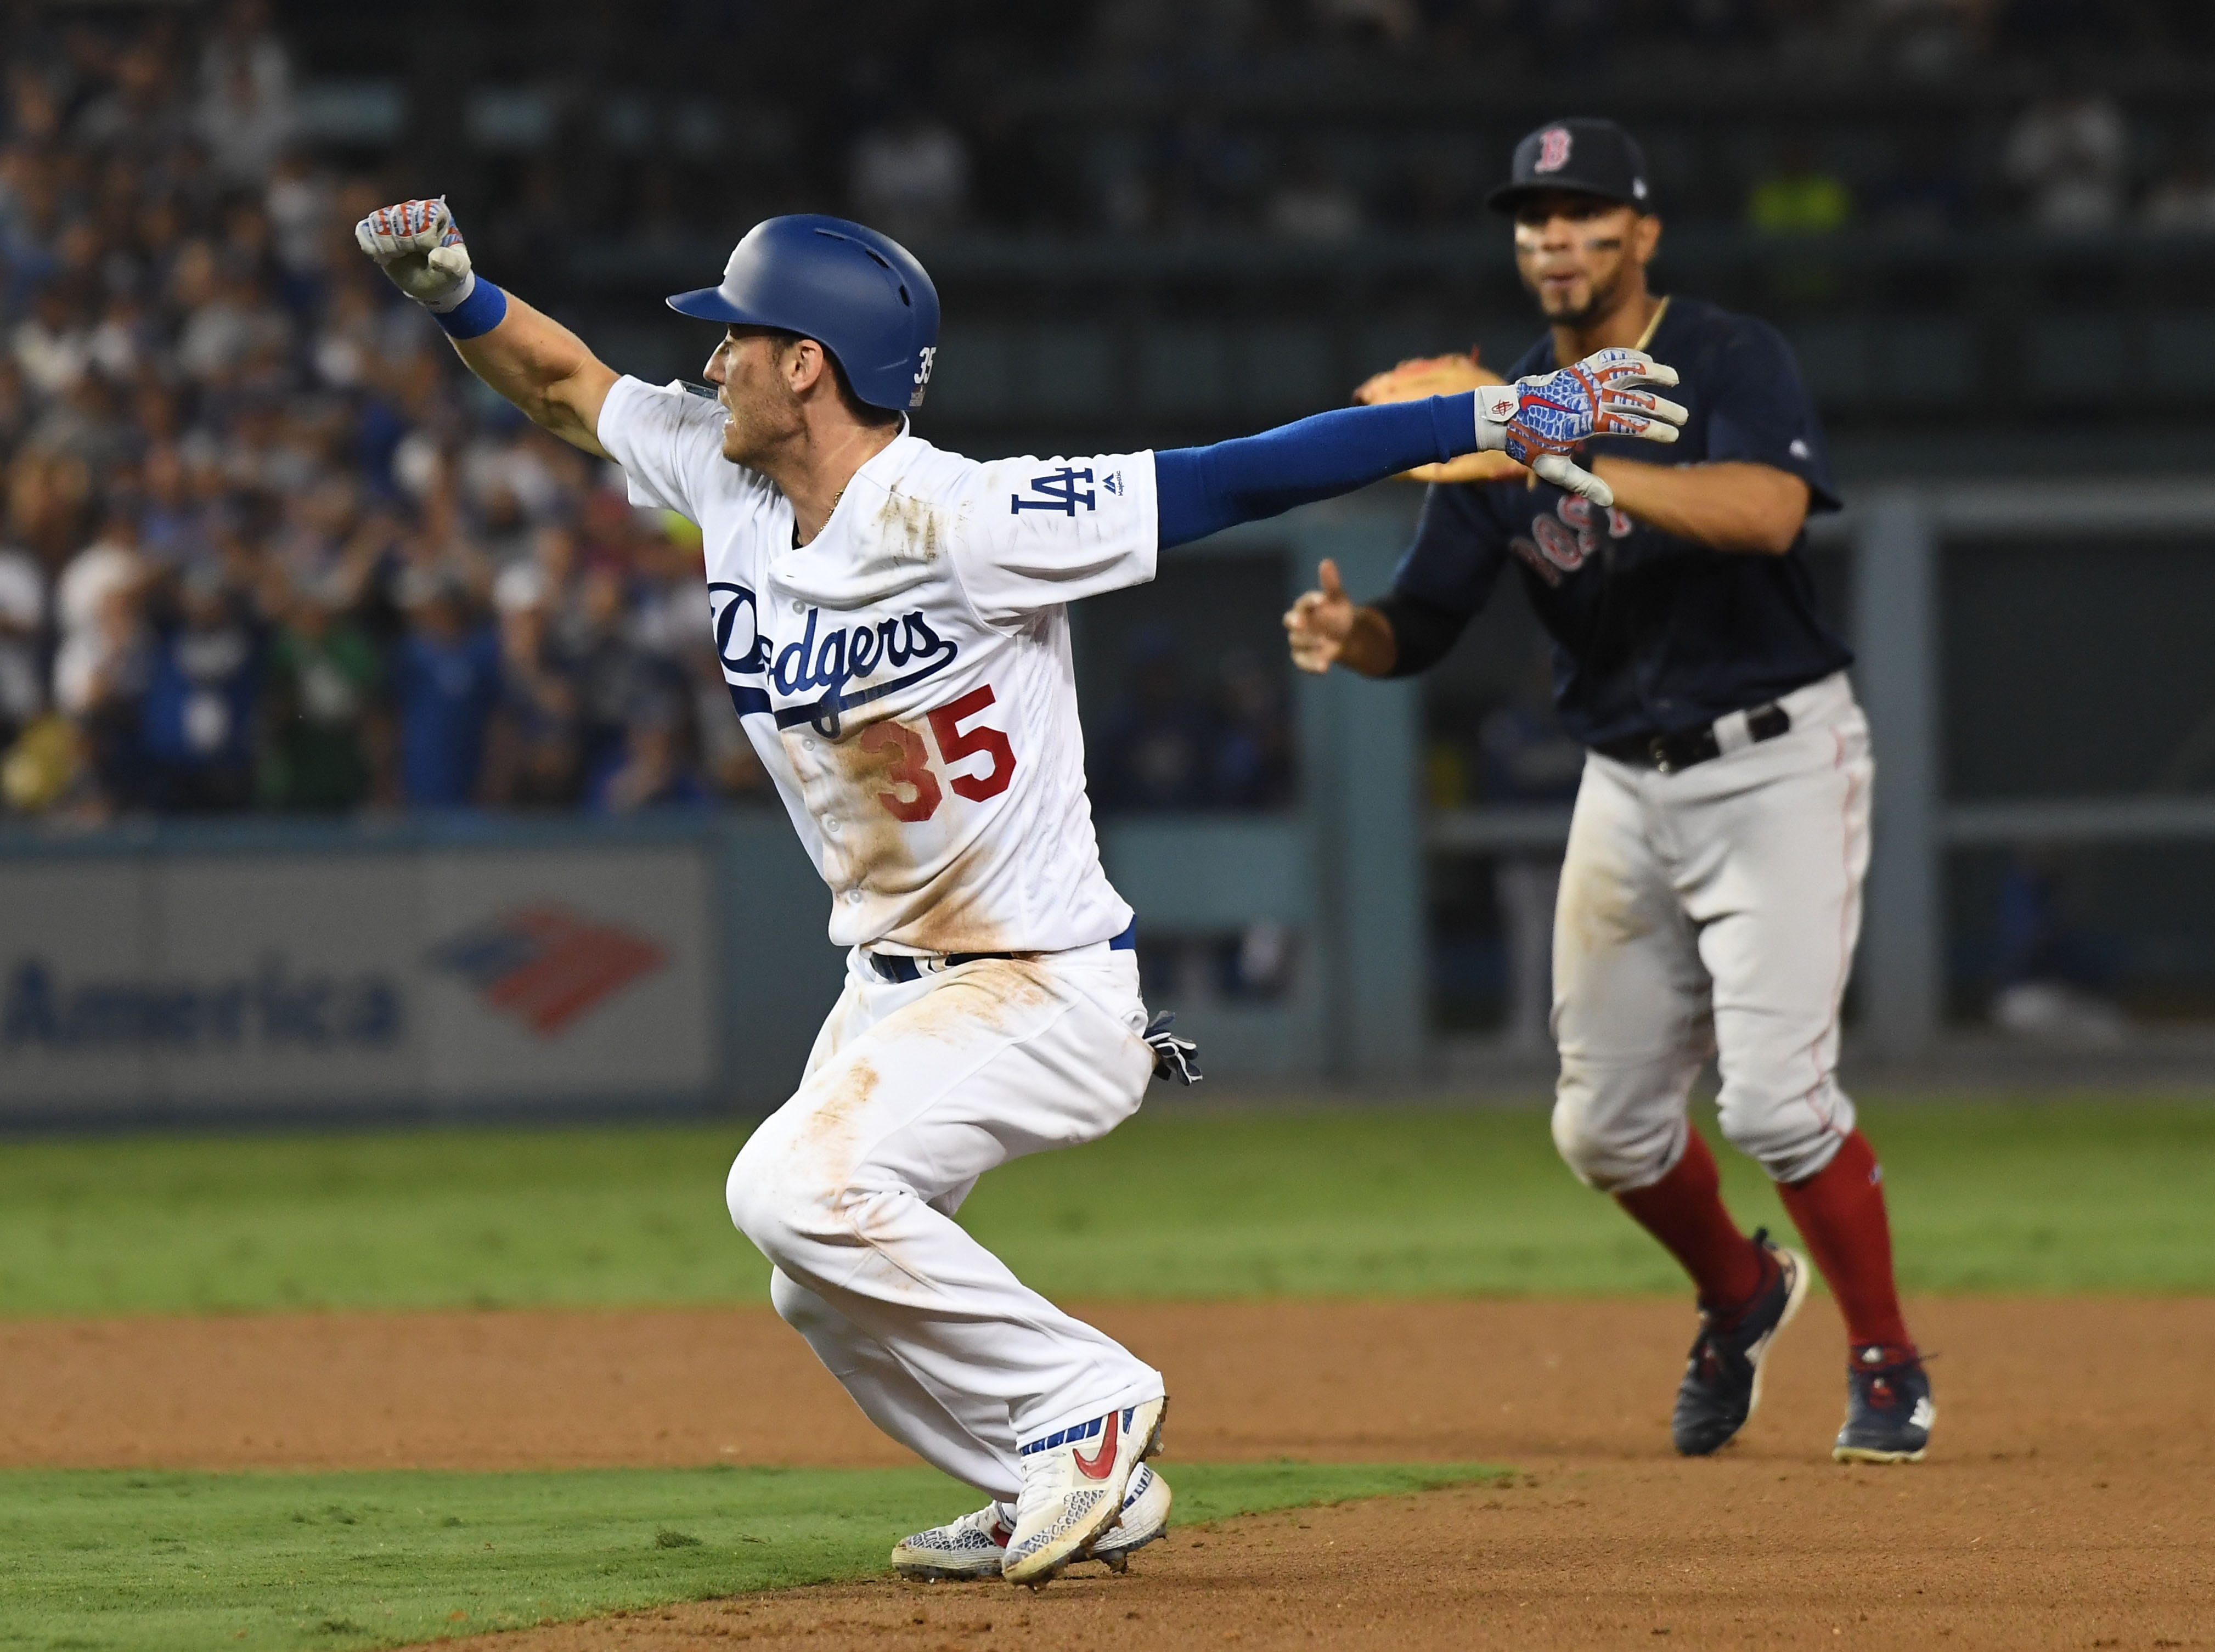 Game 3 at Dodger Stadium: Cody Bellinger gets caught in a rundown in the ninth inning.